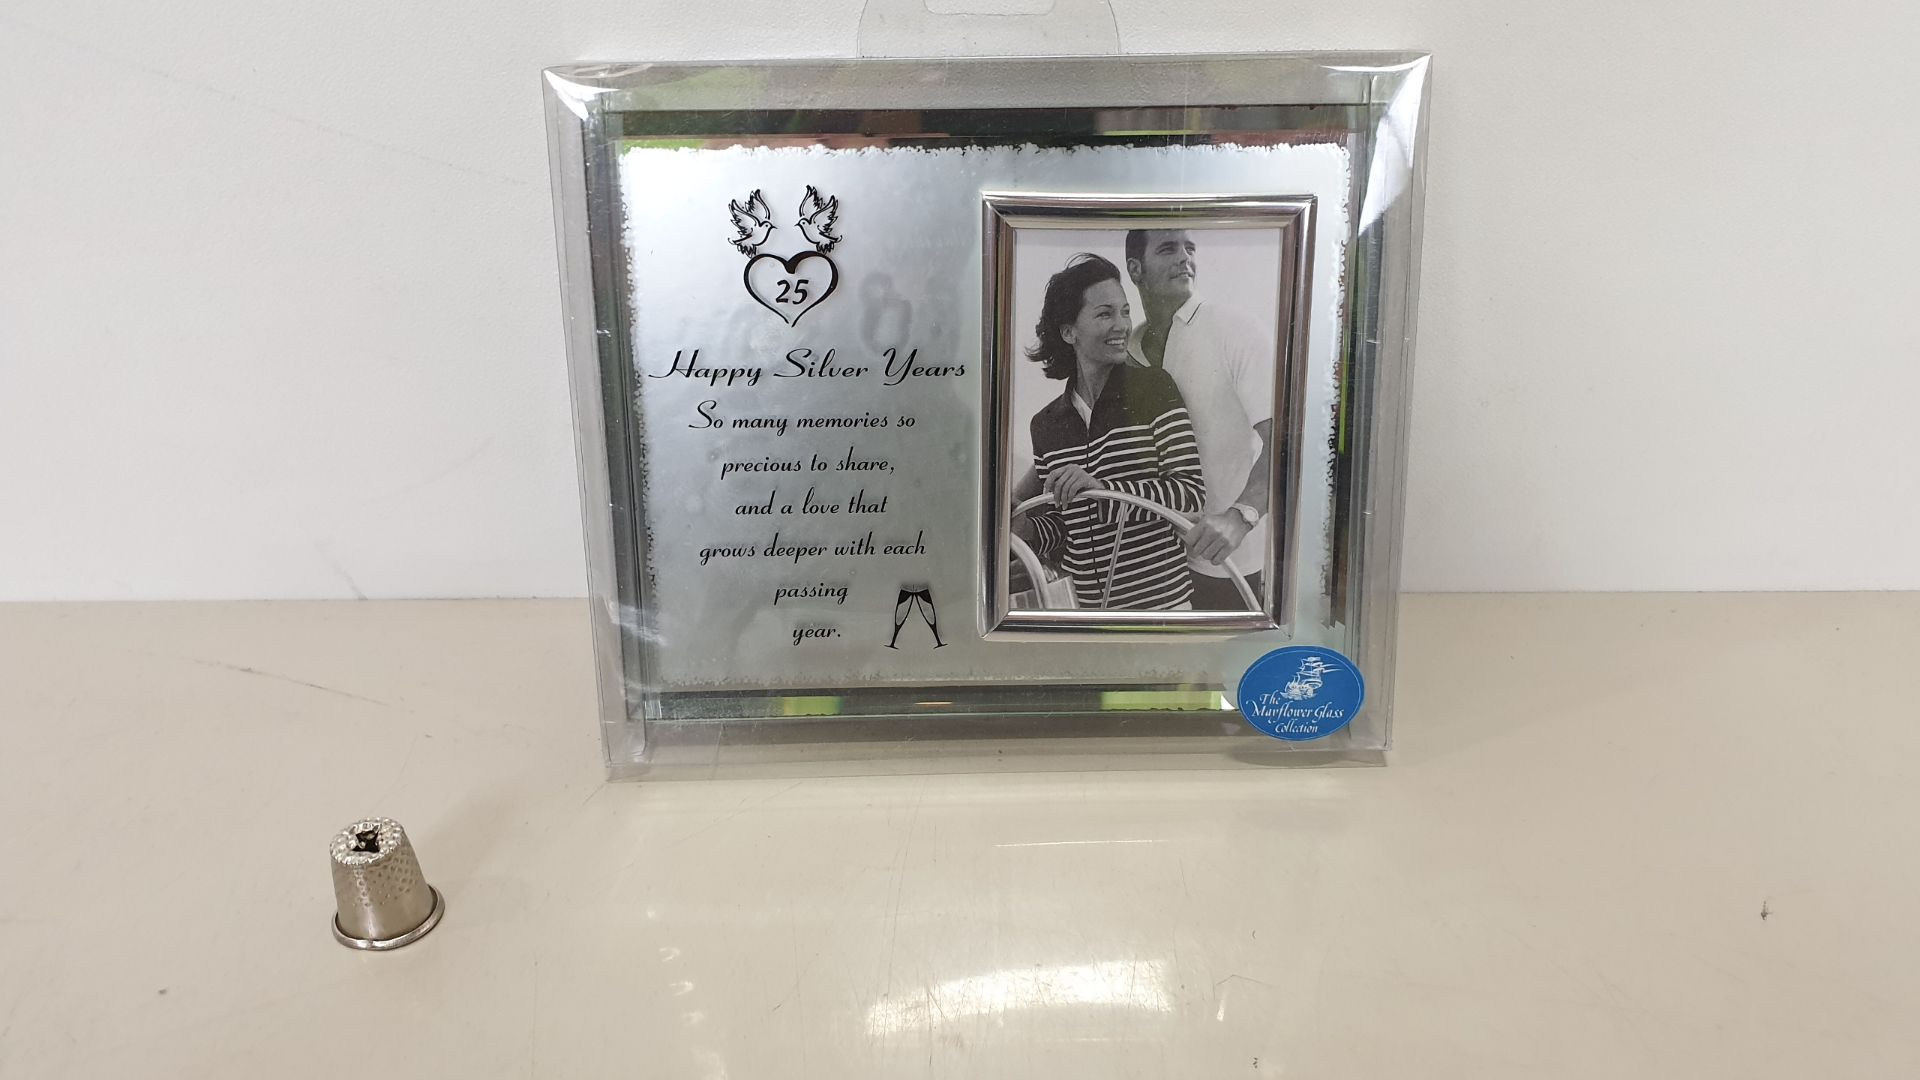 Lot 640 - 144 X BRAND NEW 'THE MAYFLOWER GLASS COLLECTION' SILVER ANNIVERSARY FRAME 'HAPPY SILVER YEARS' -